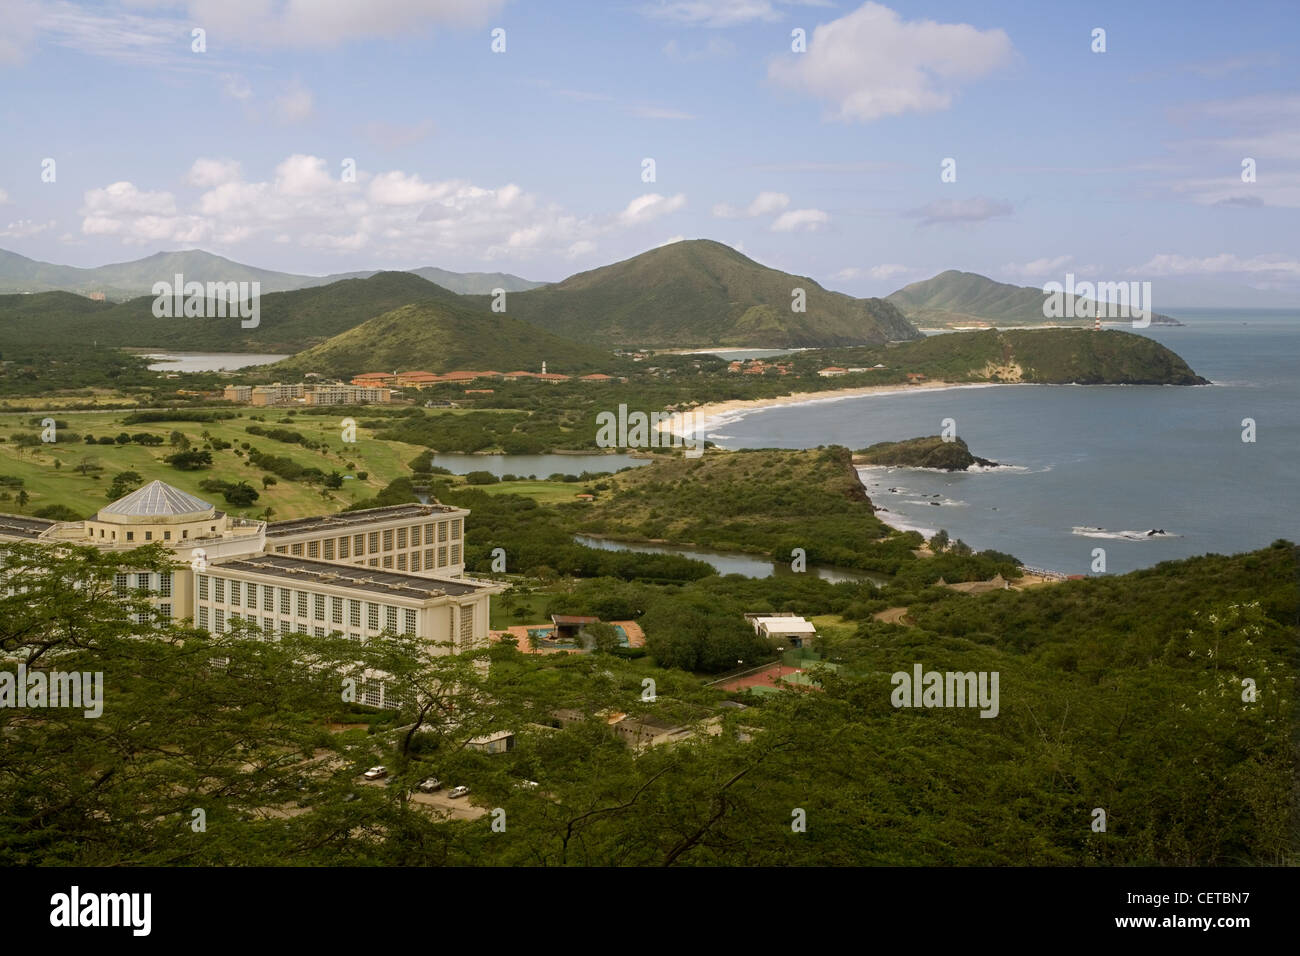 Venezuela Margarita island north coast - Stock Image